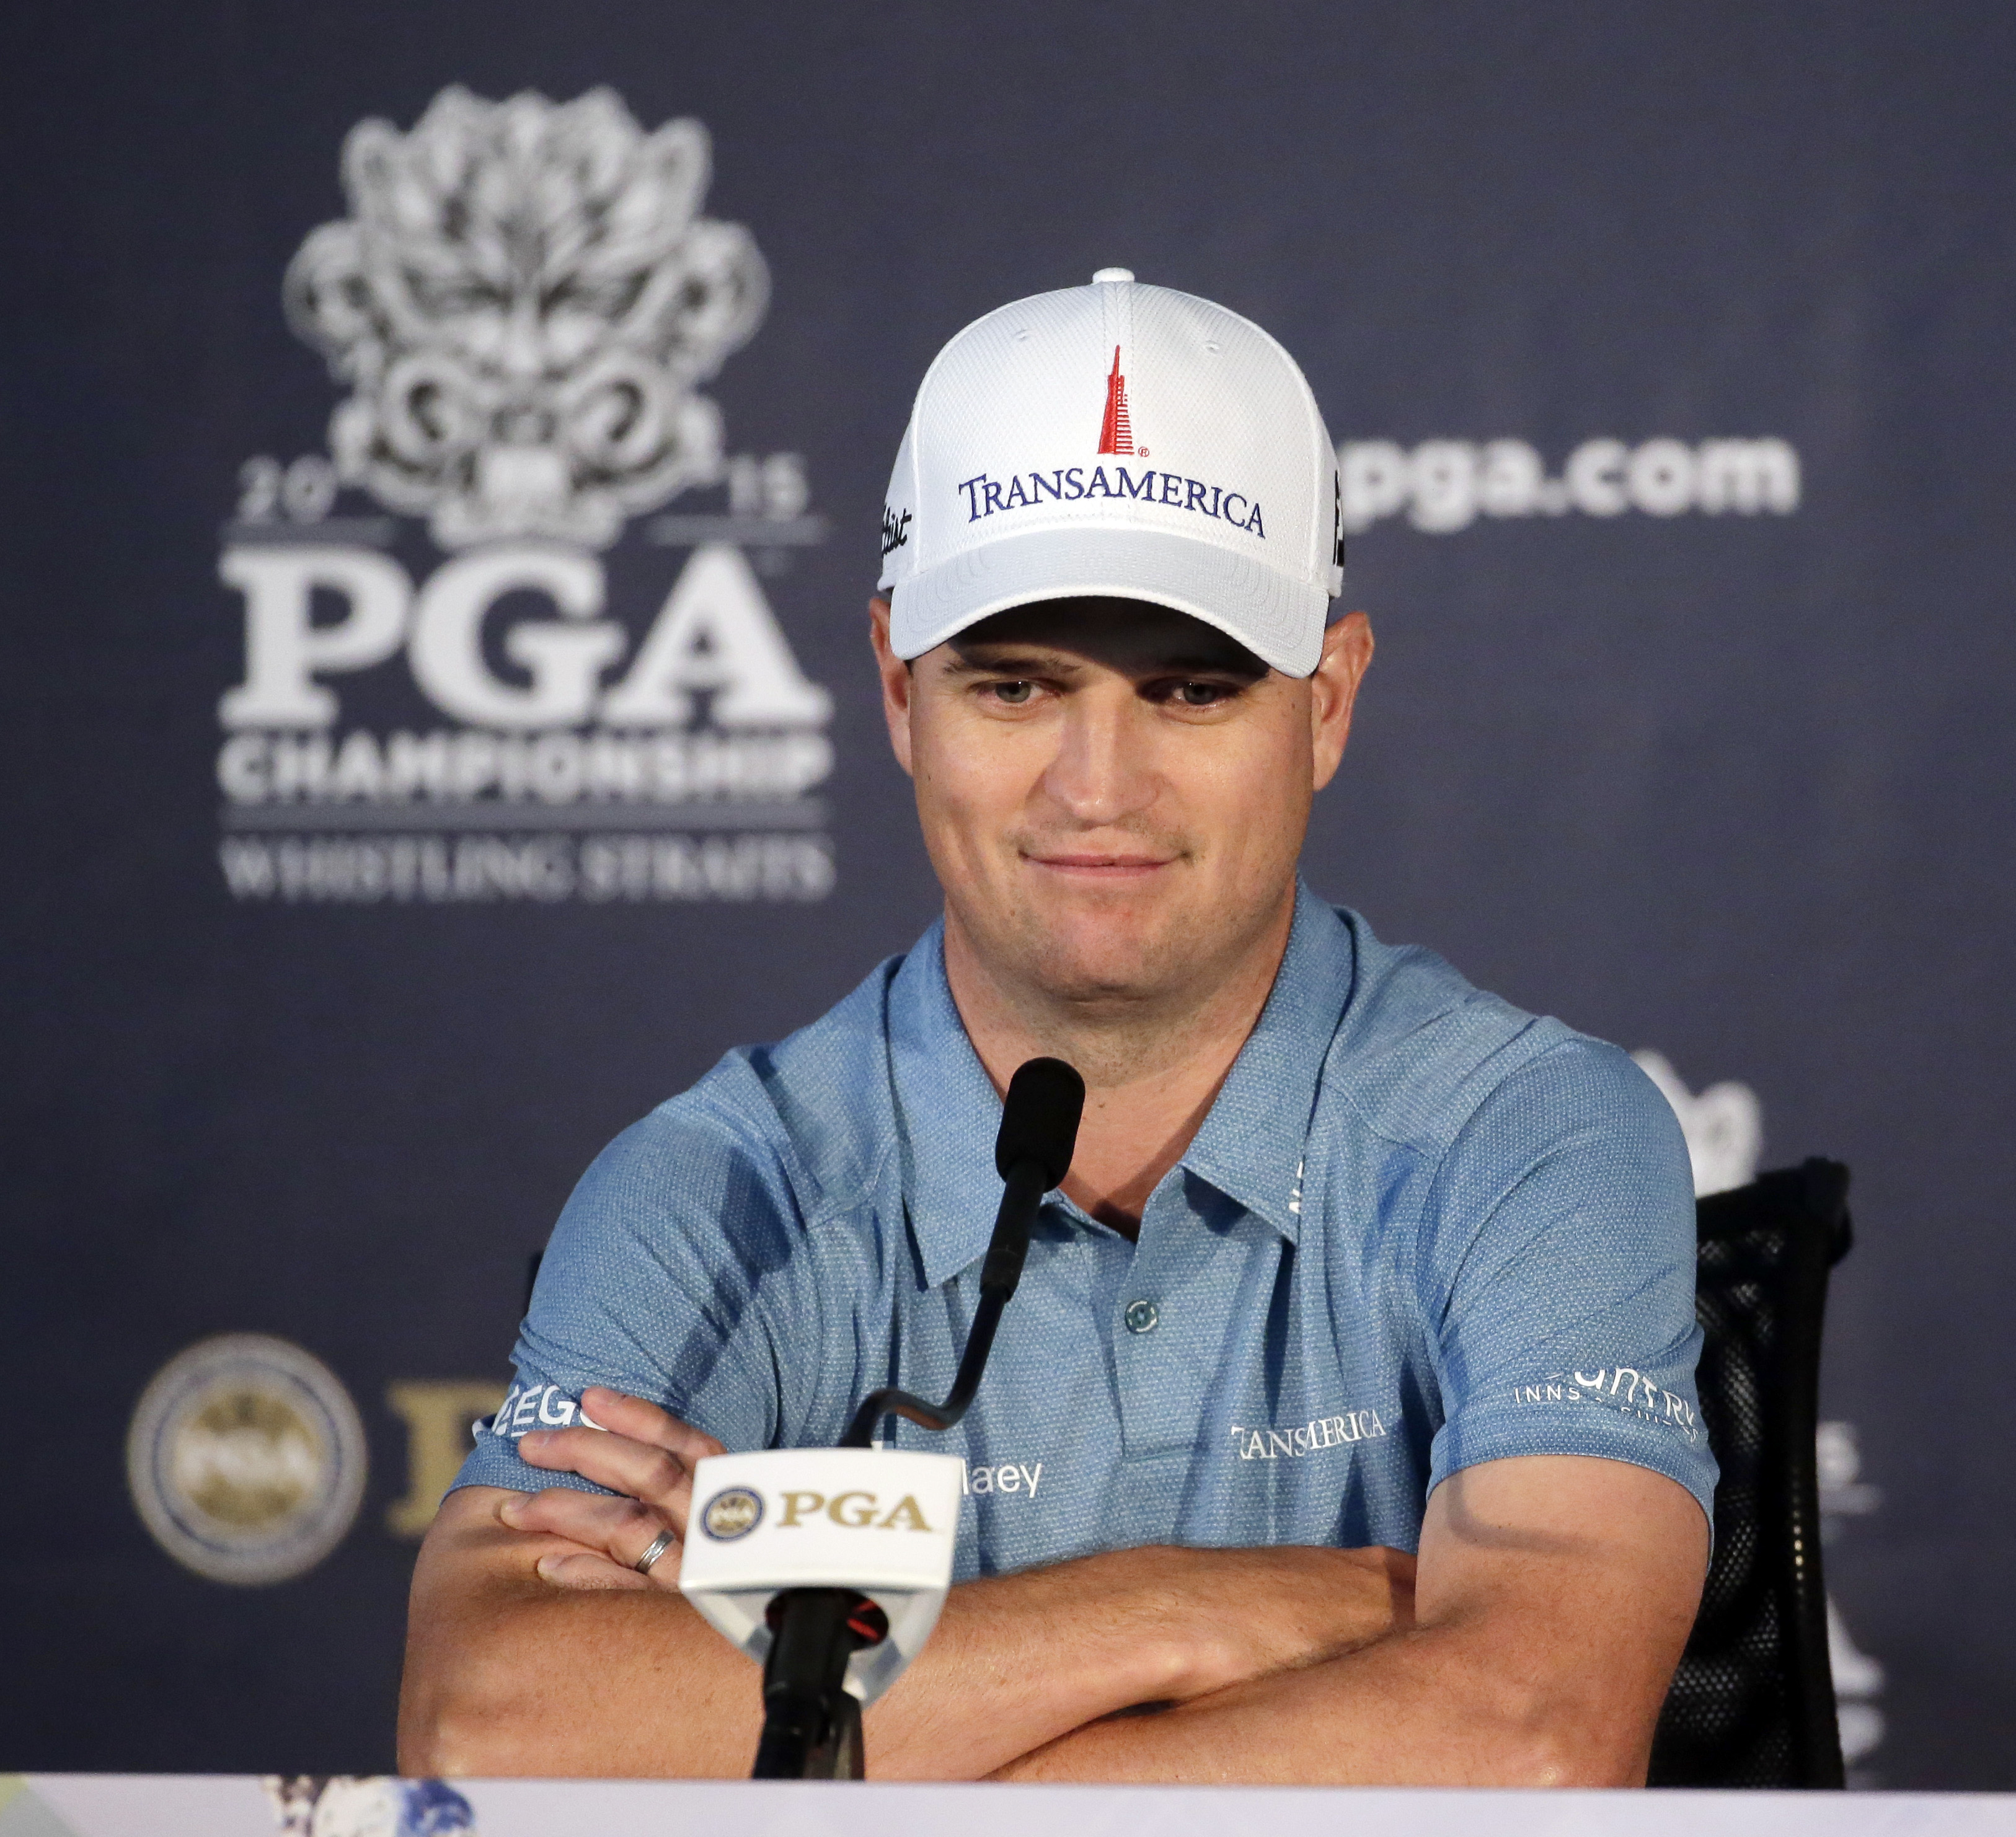 Zach Johnson answers questions before a practice round for the PGA Championship golf tournament Tuesday, Aug. 11, 2015, at Whistling Straits in Haven, Wis. (AP Photo/Chris Carlson)